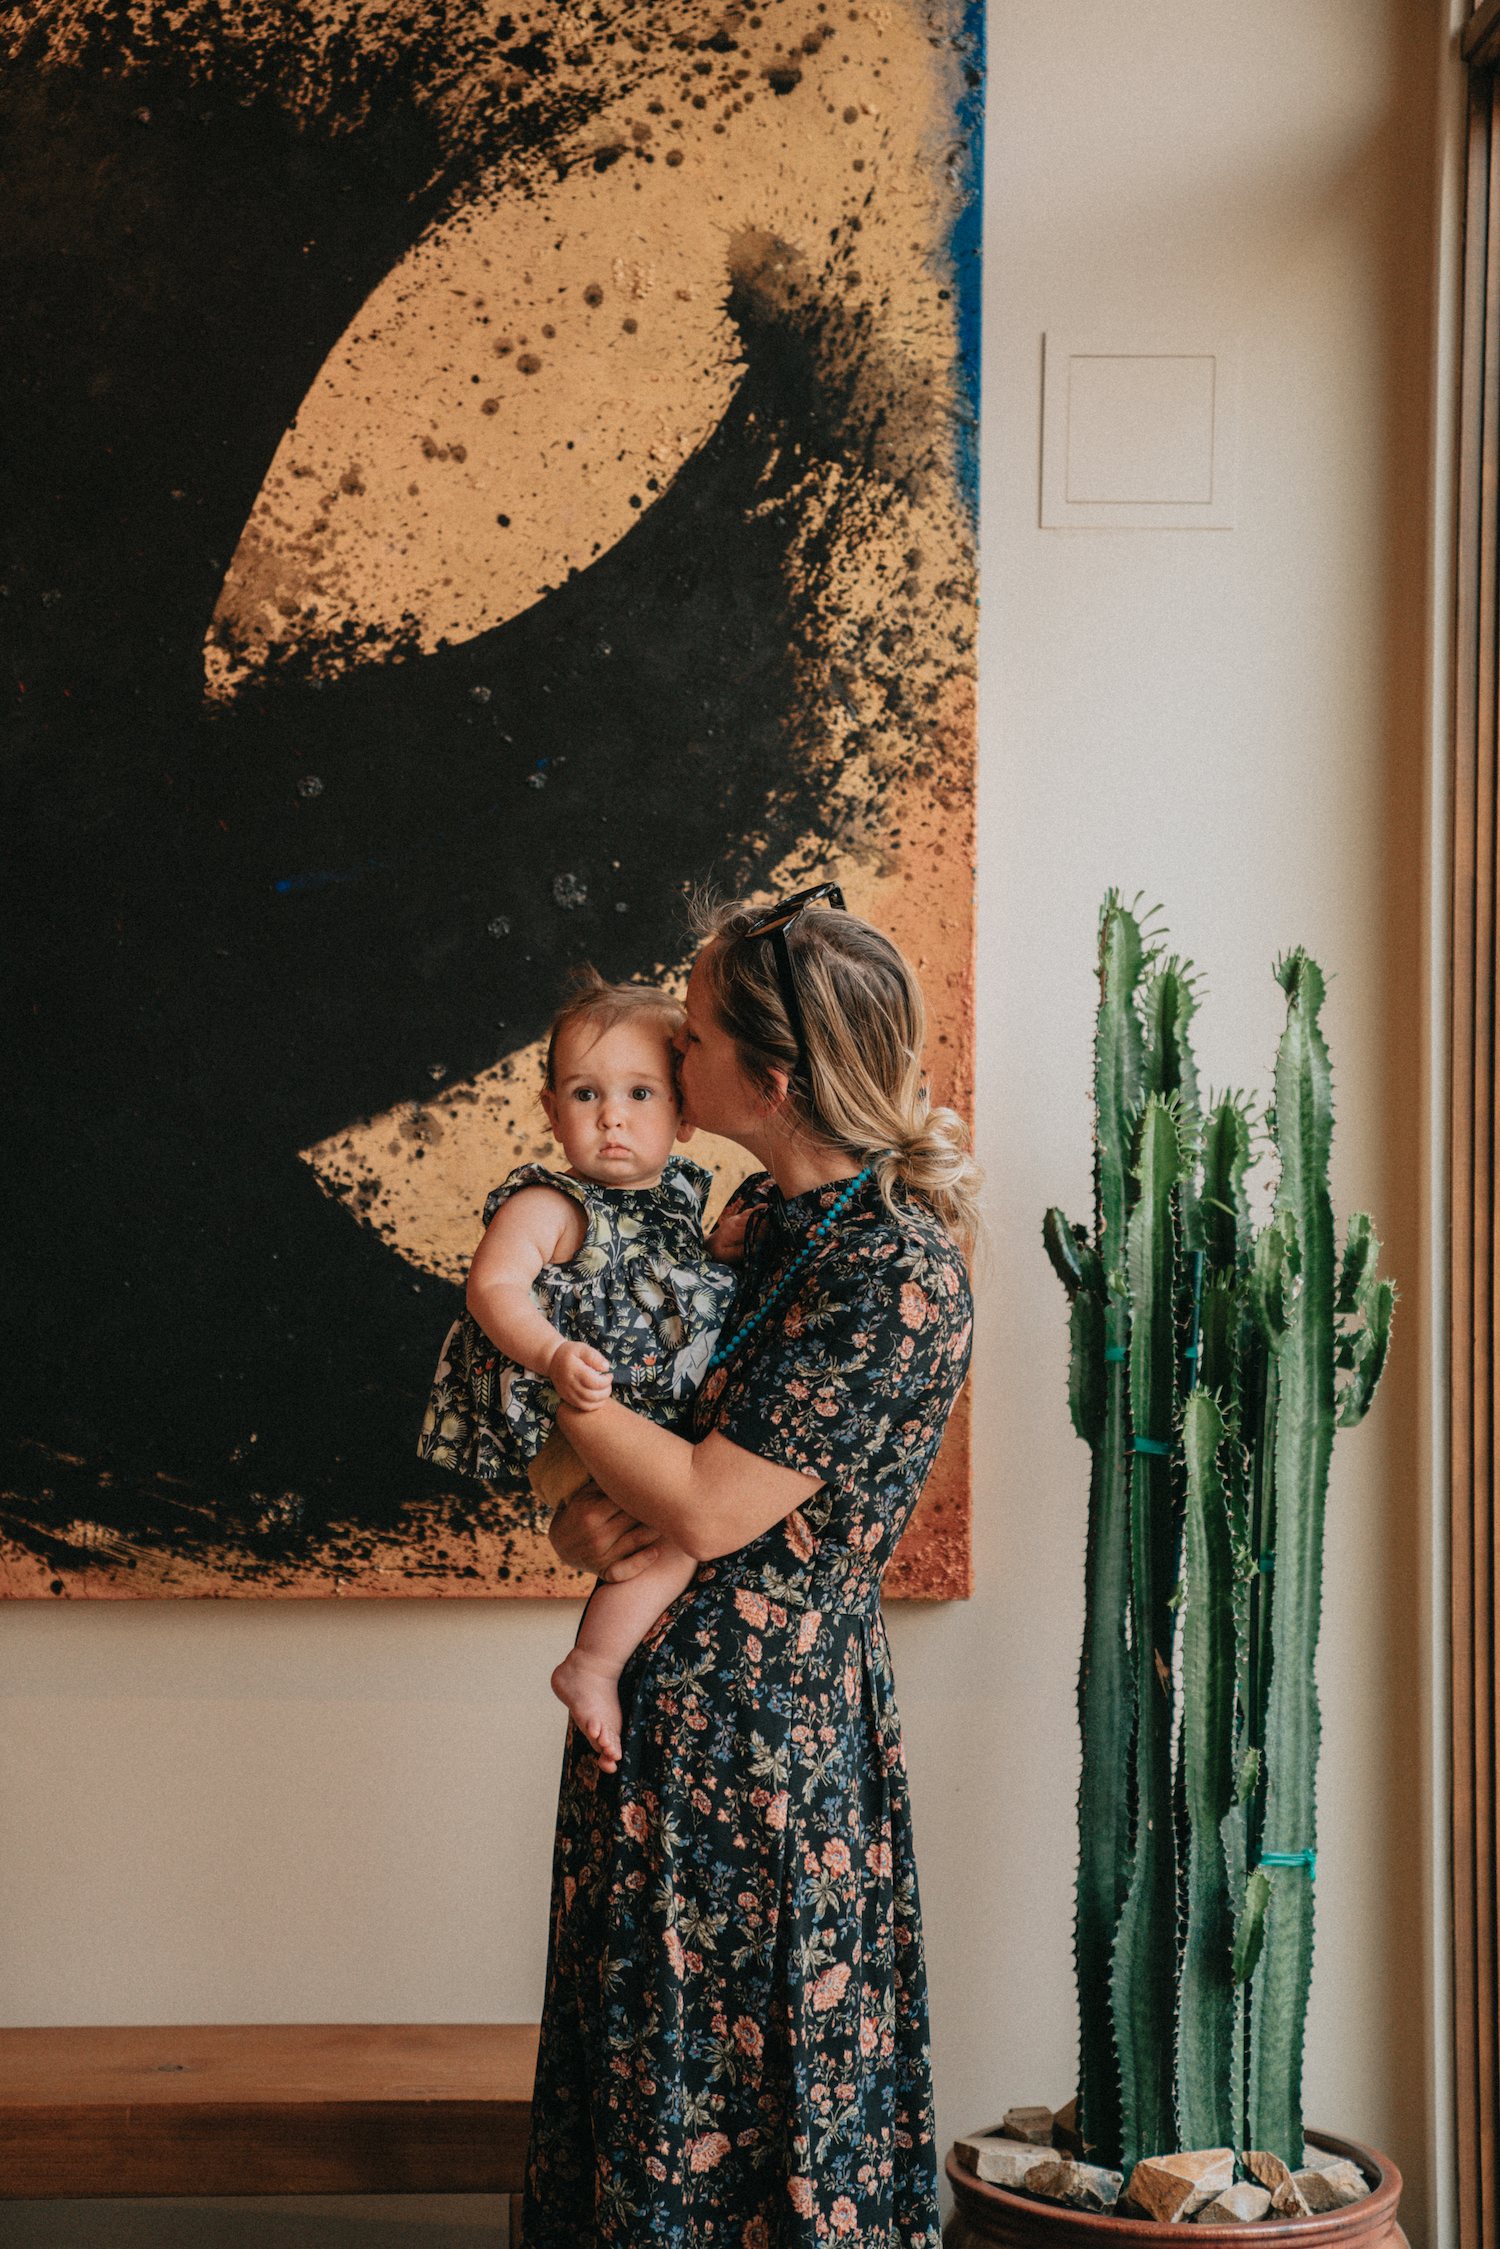 A woman holding a baby in front of a piece of art